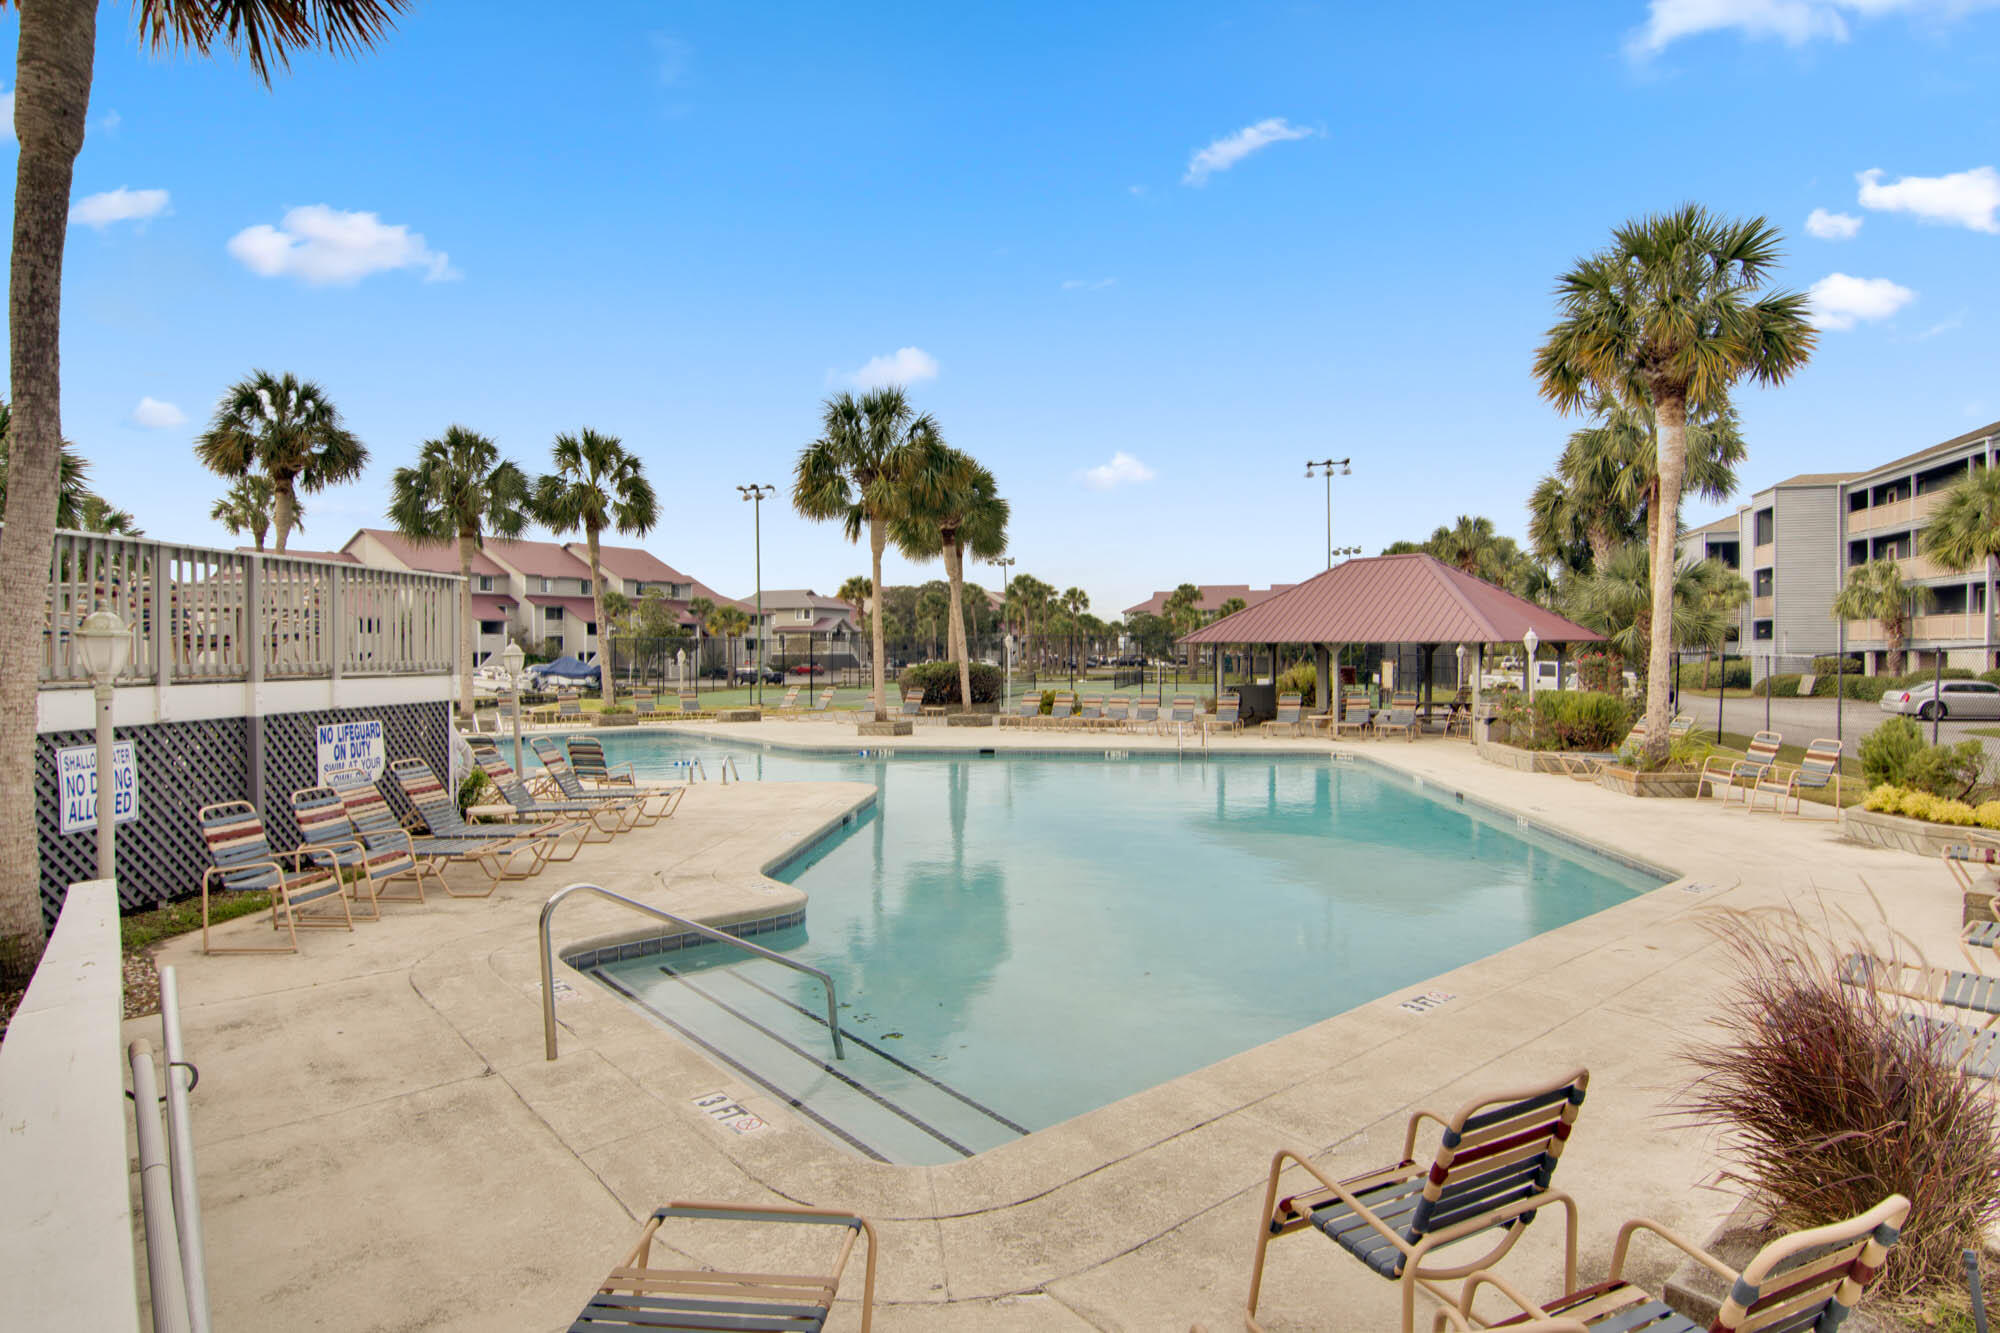 Mariners Cay Homes For Sale - 56 Mariners Cay, Folly Beach, SC - 28